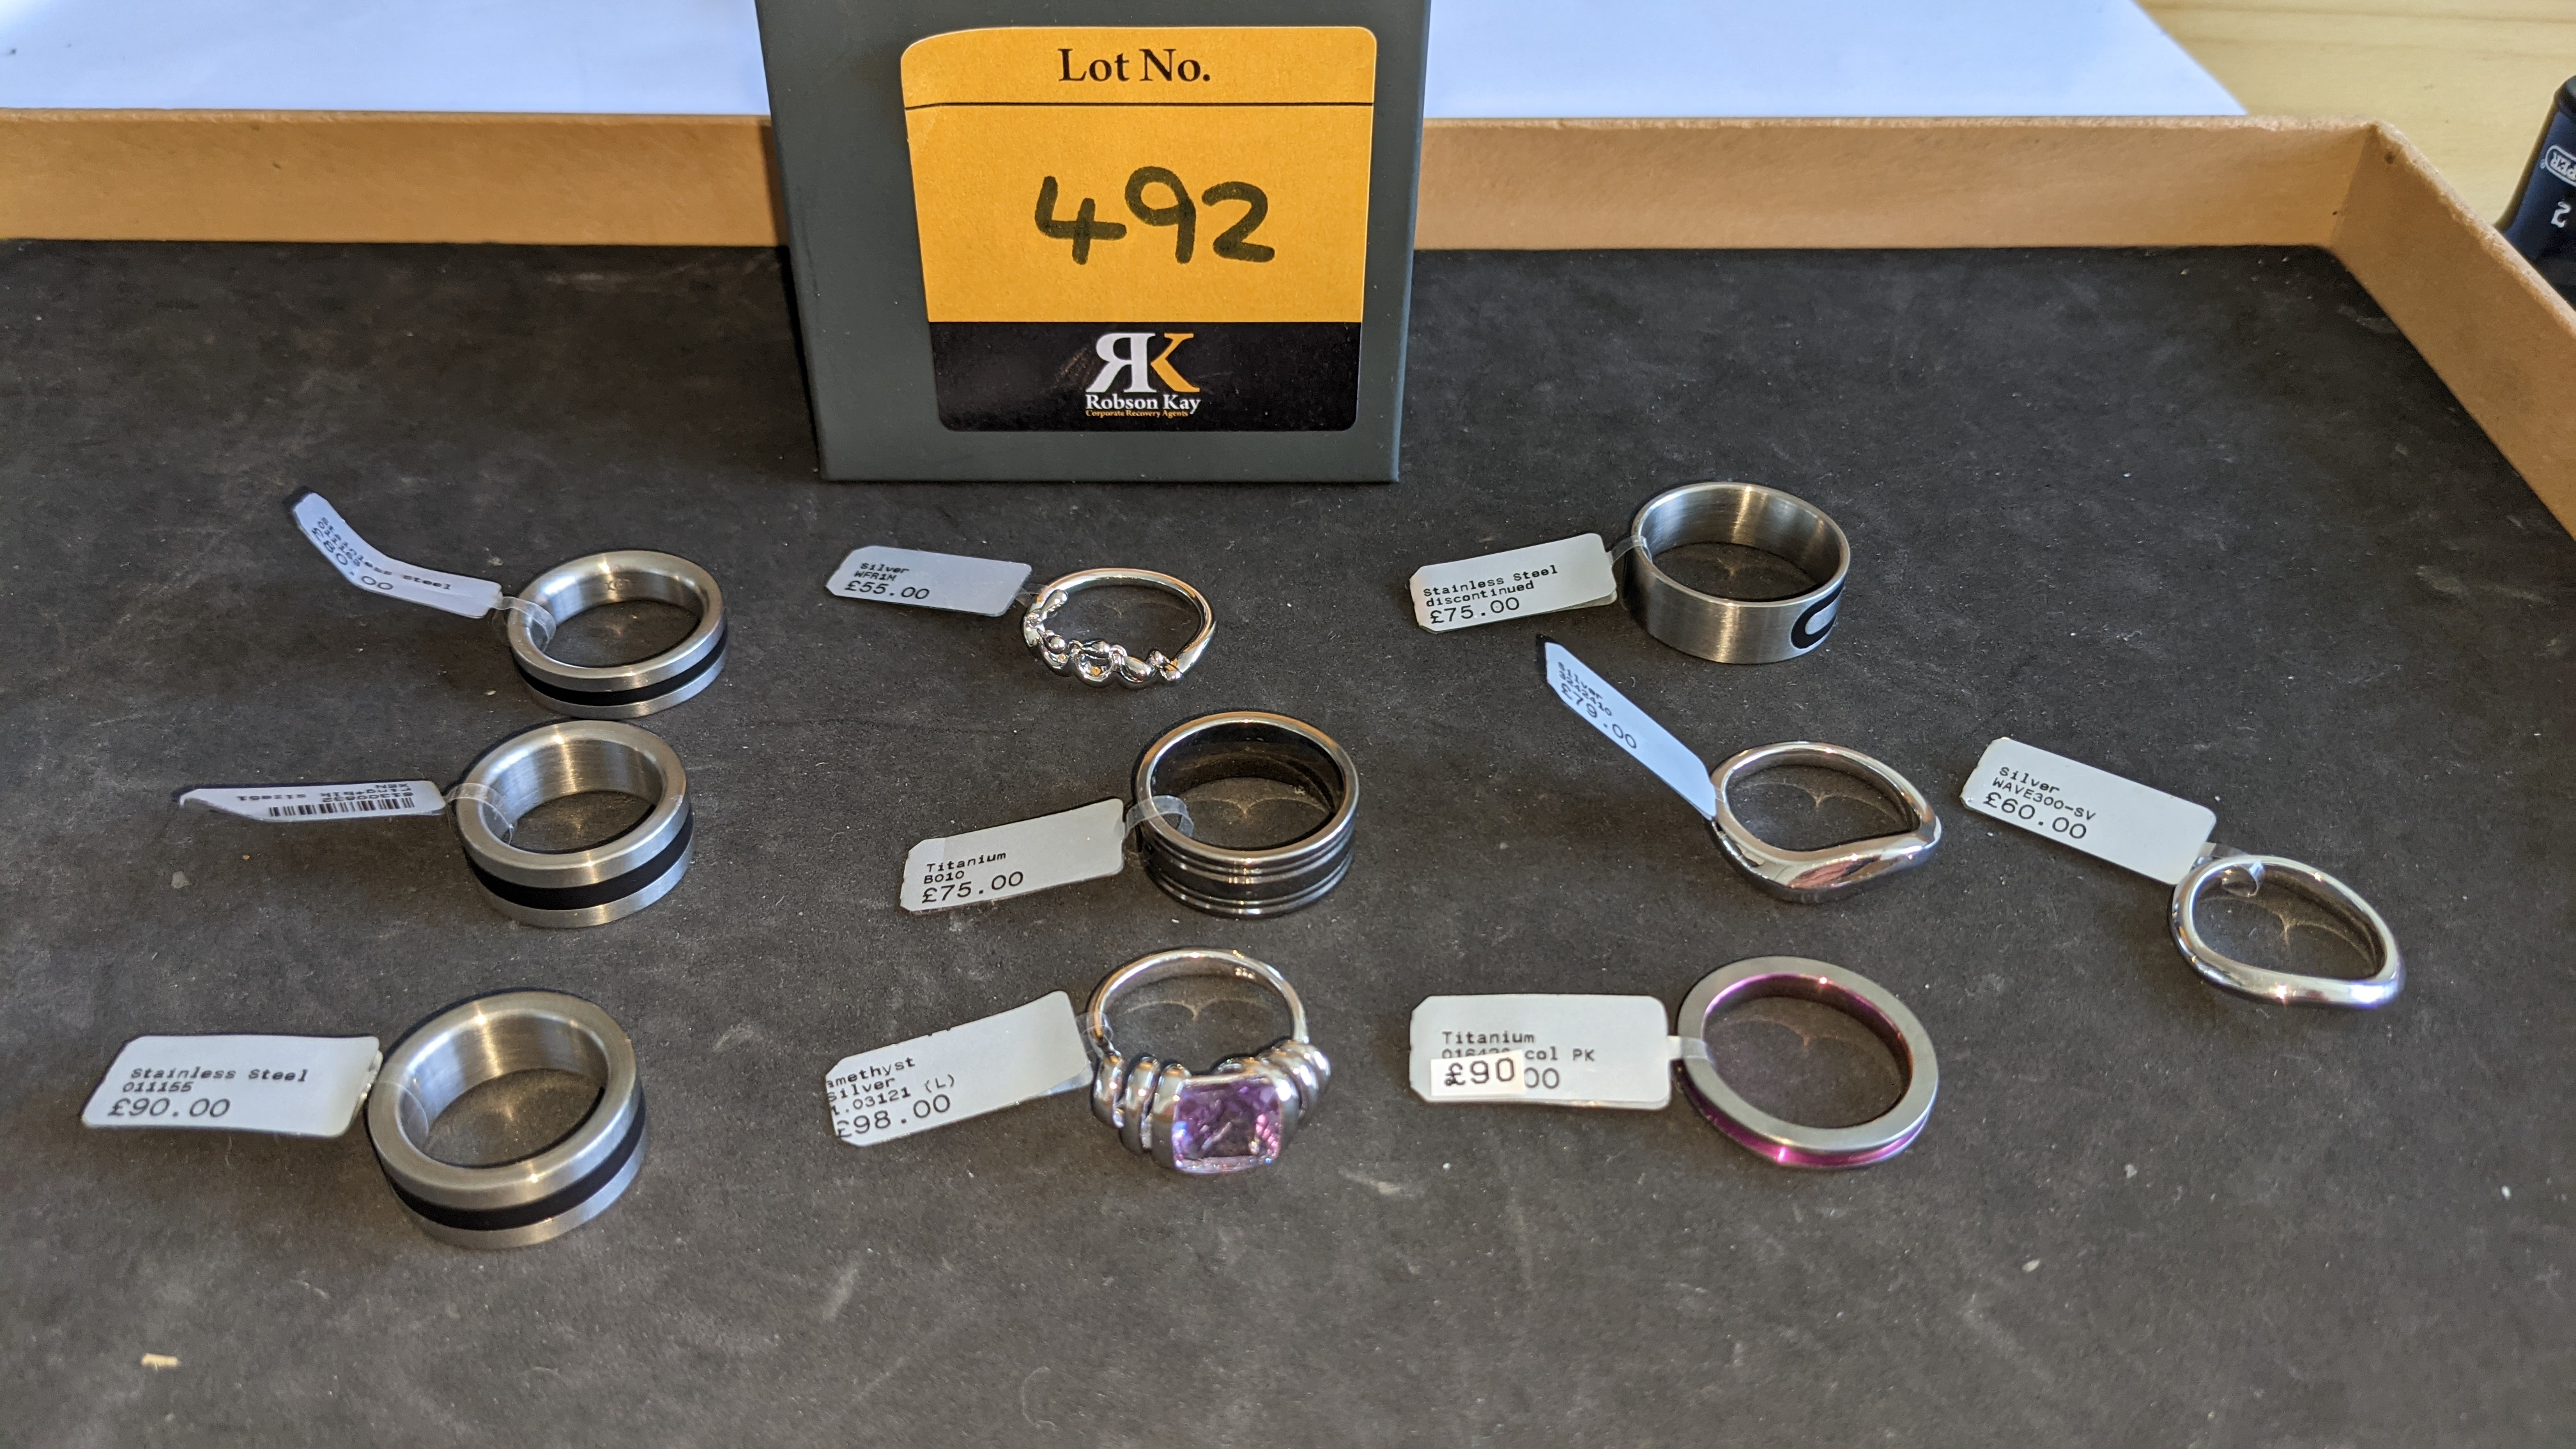 10 off assorted rings in a variety of styles, colours & finishes with RRPs from £55 - £98 per ring.